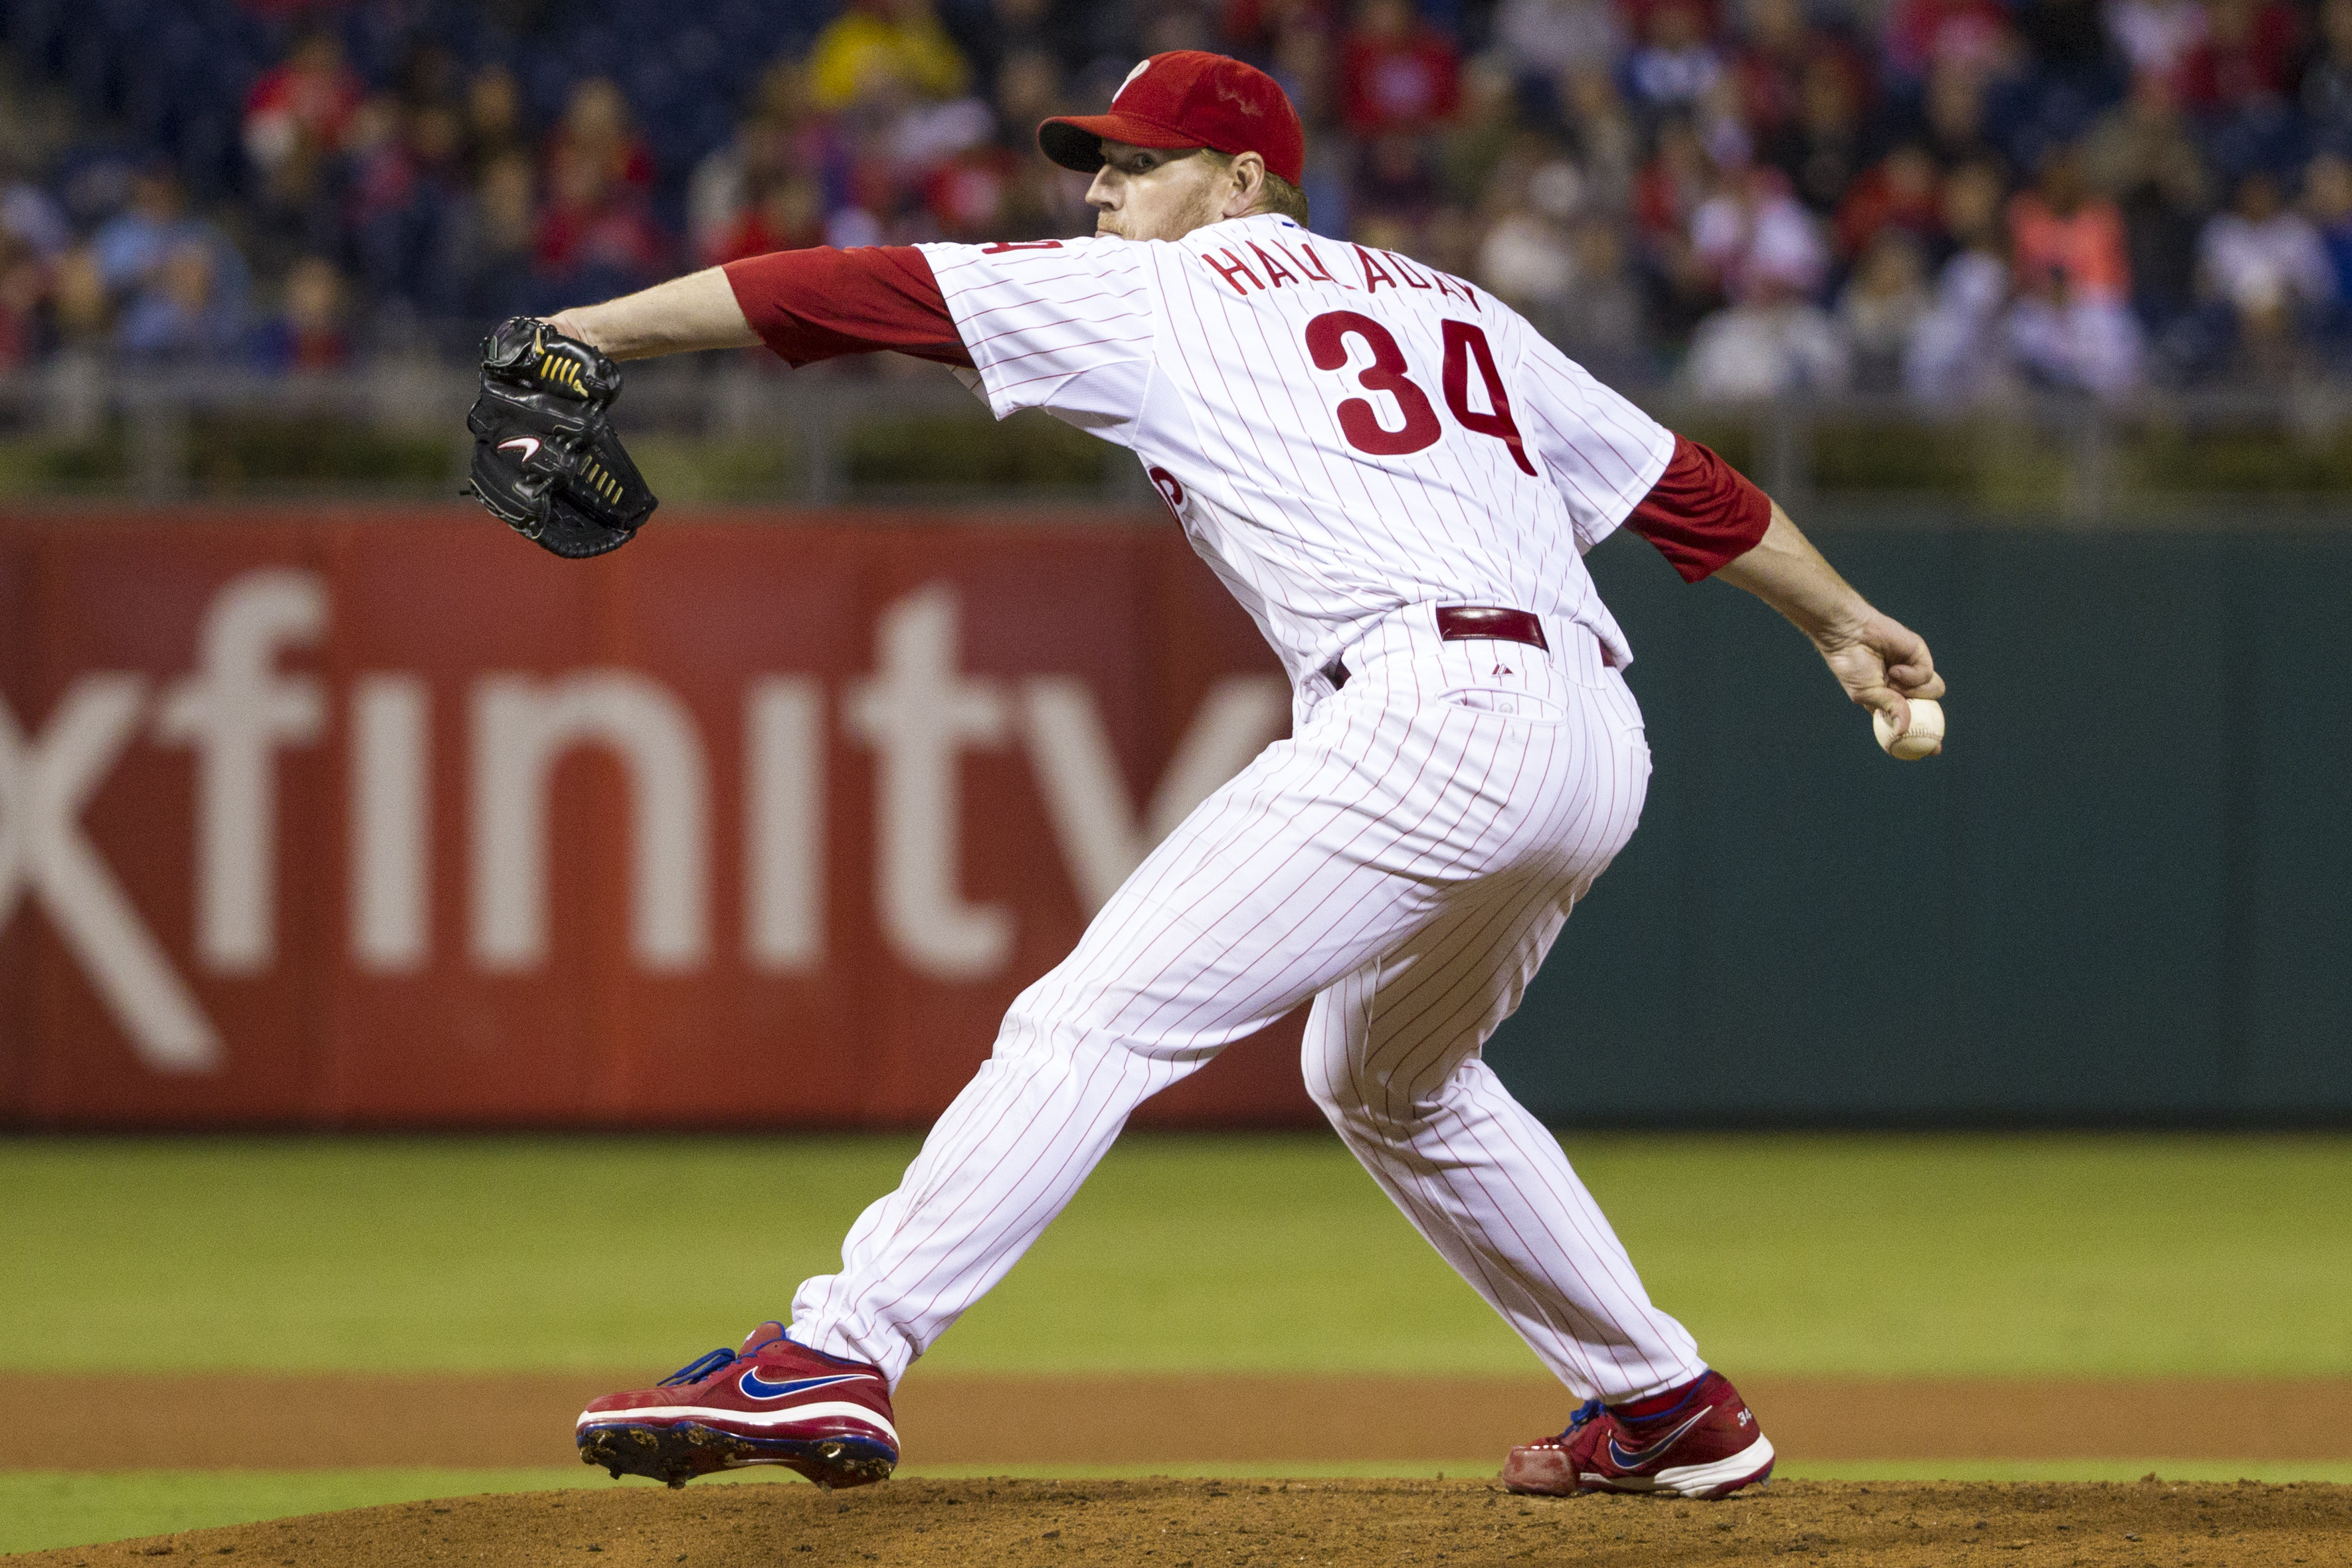 <div class='meta'><div class='origin-logo' data-origin='none'></div><span class='caption-text' data-credit=''>Roy Halladay on the mound for the Phillies in September 2013.</span></div>